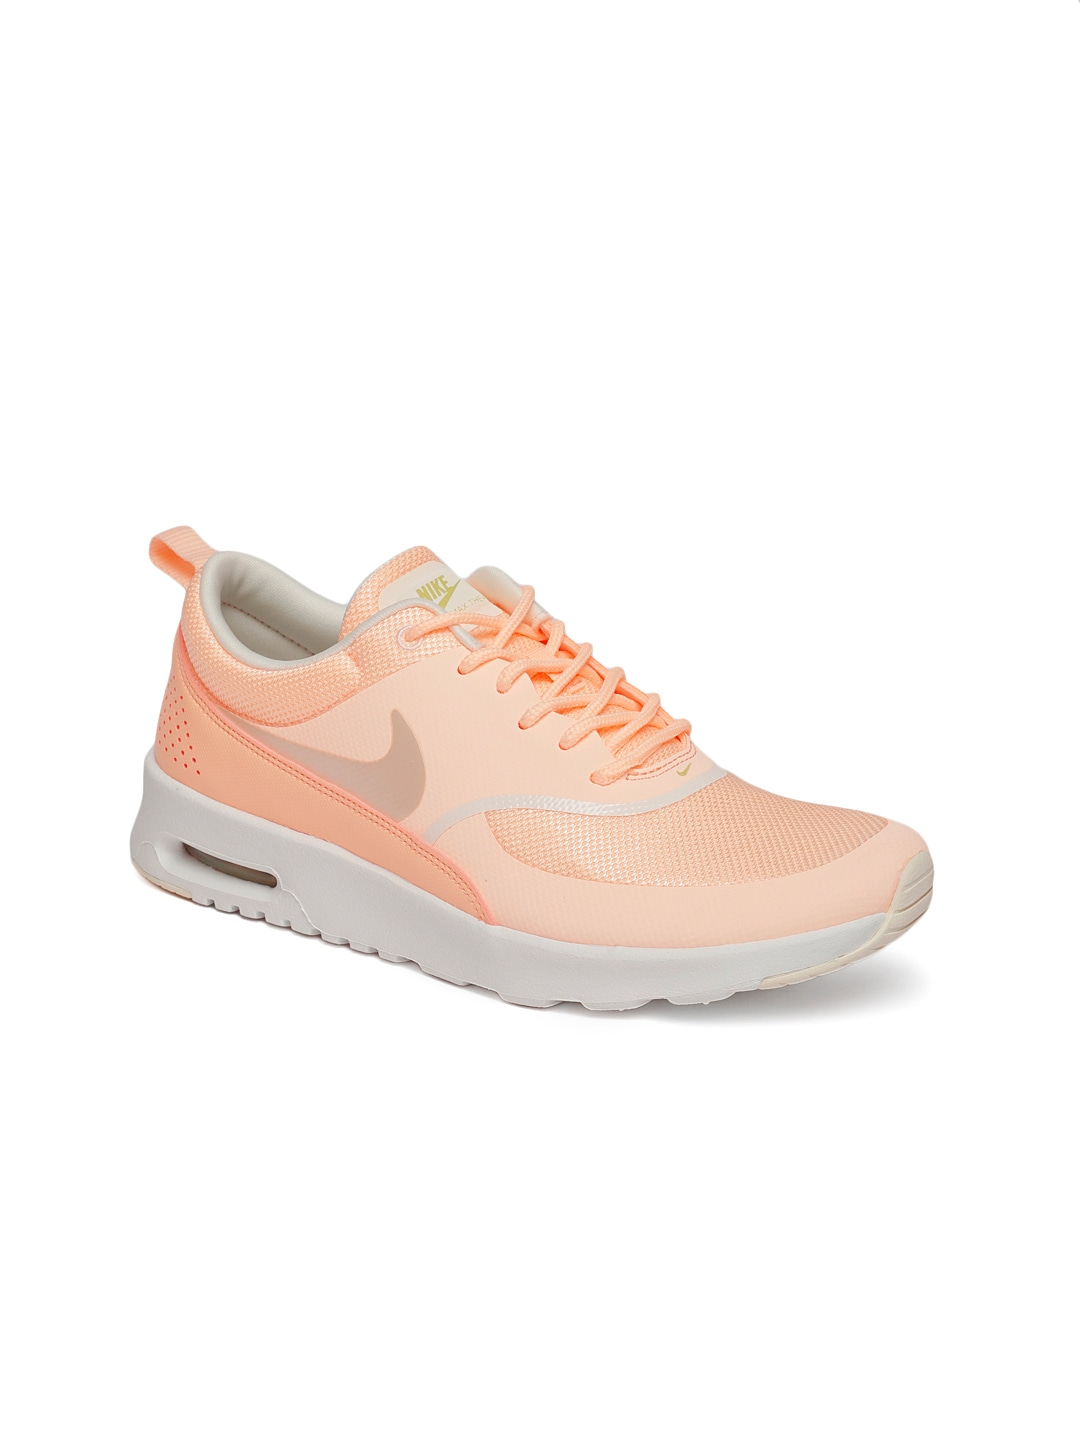 new product 1ffb4 93a4f Nike Air Max - Buy Nike Air Max Shoes, Bags, Sneakers in India